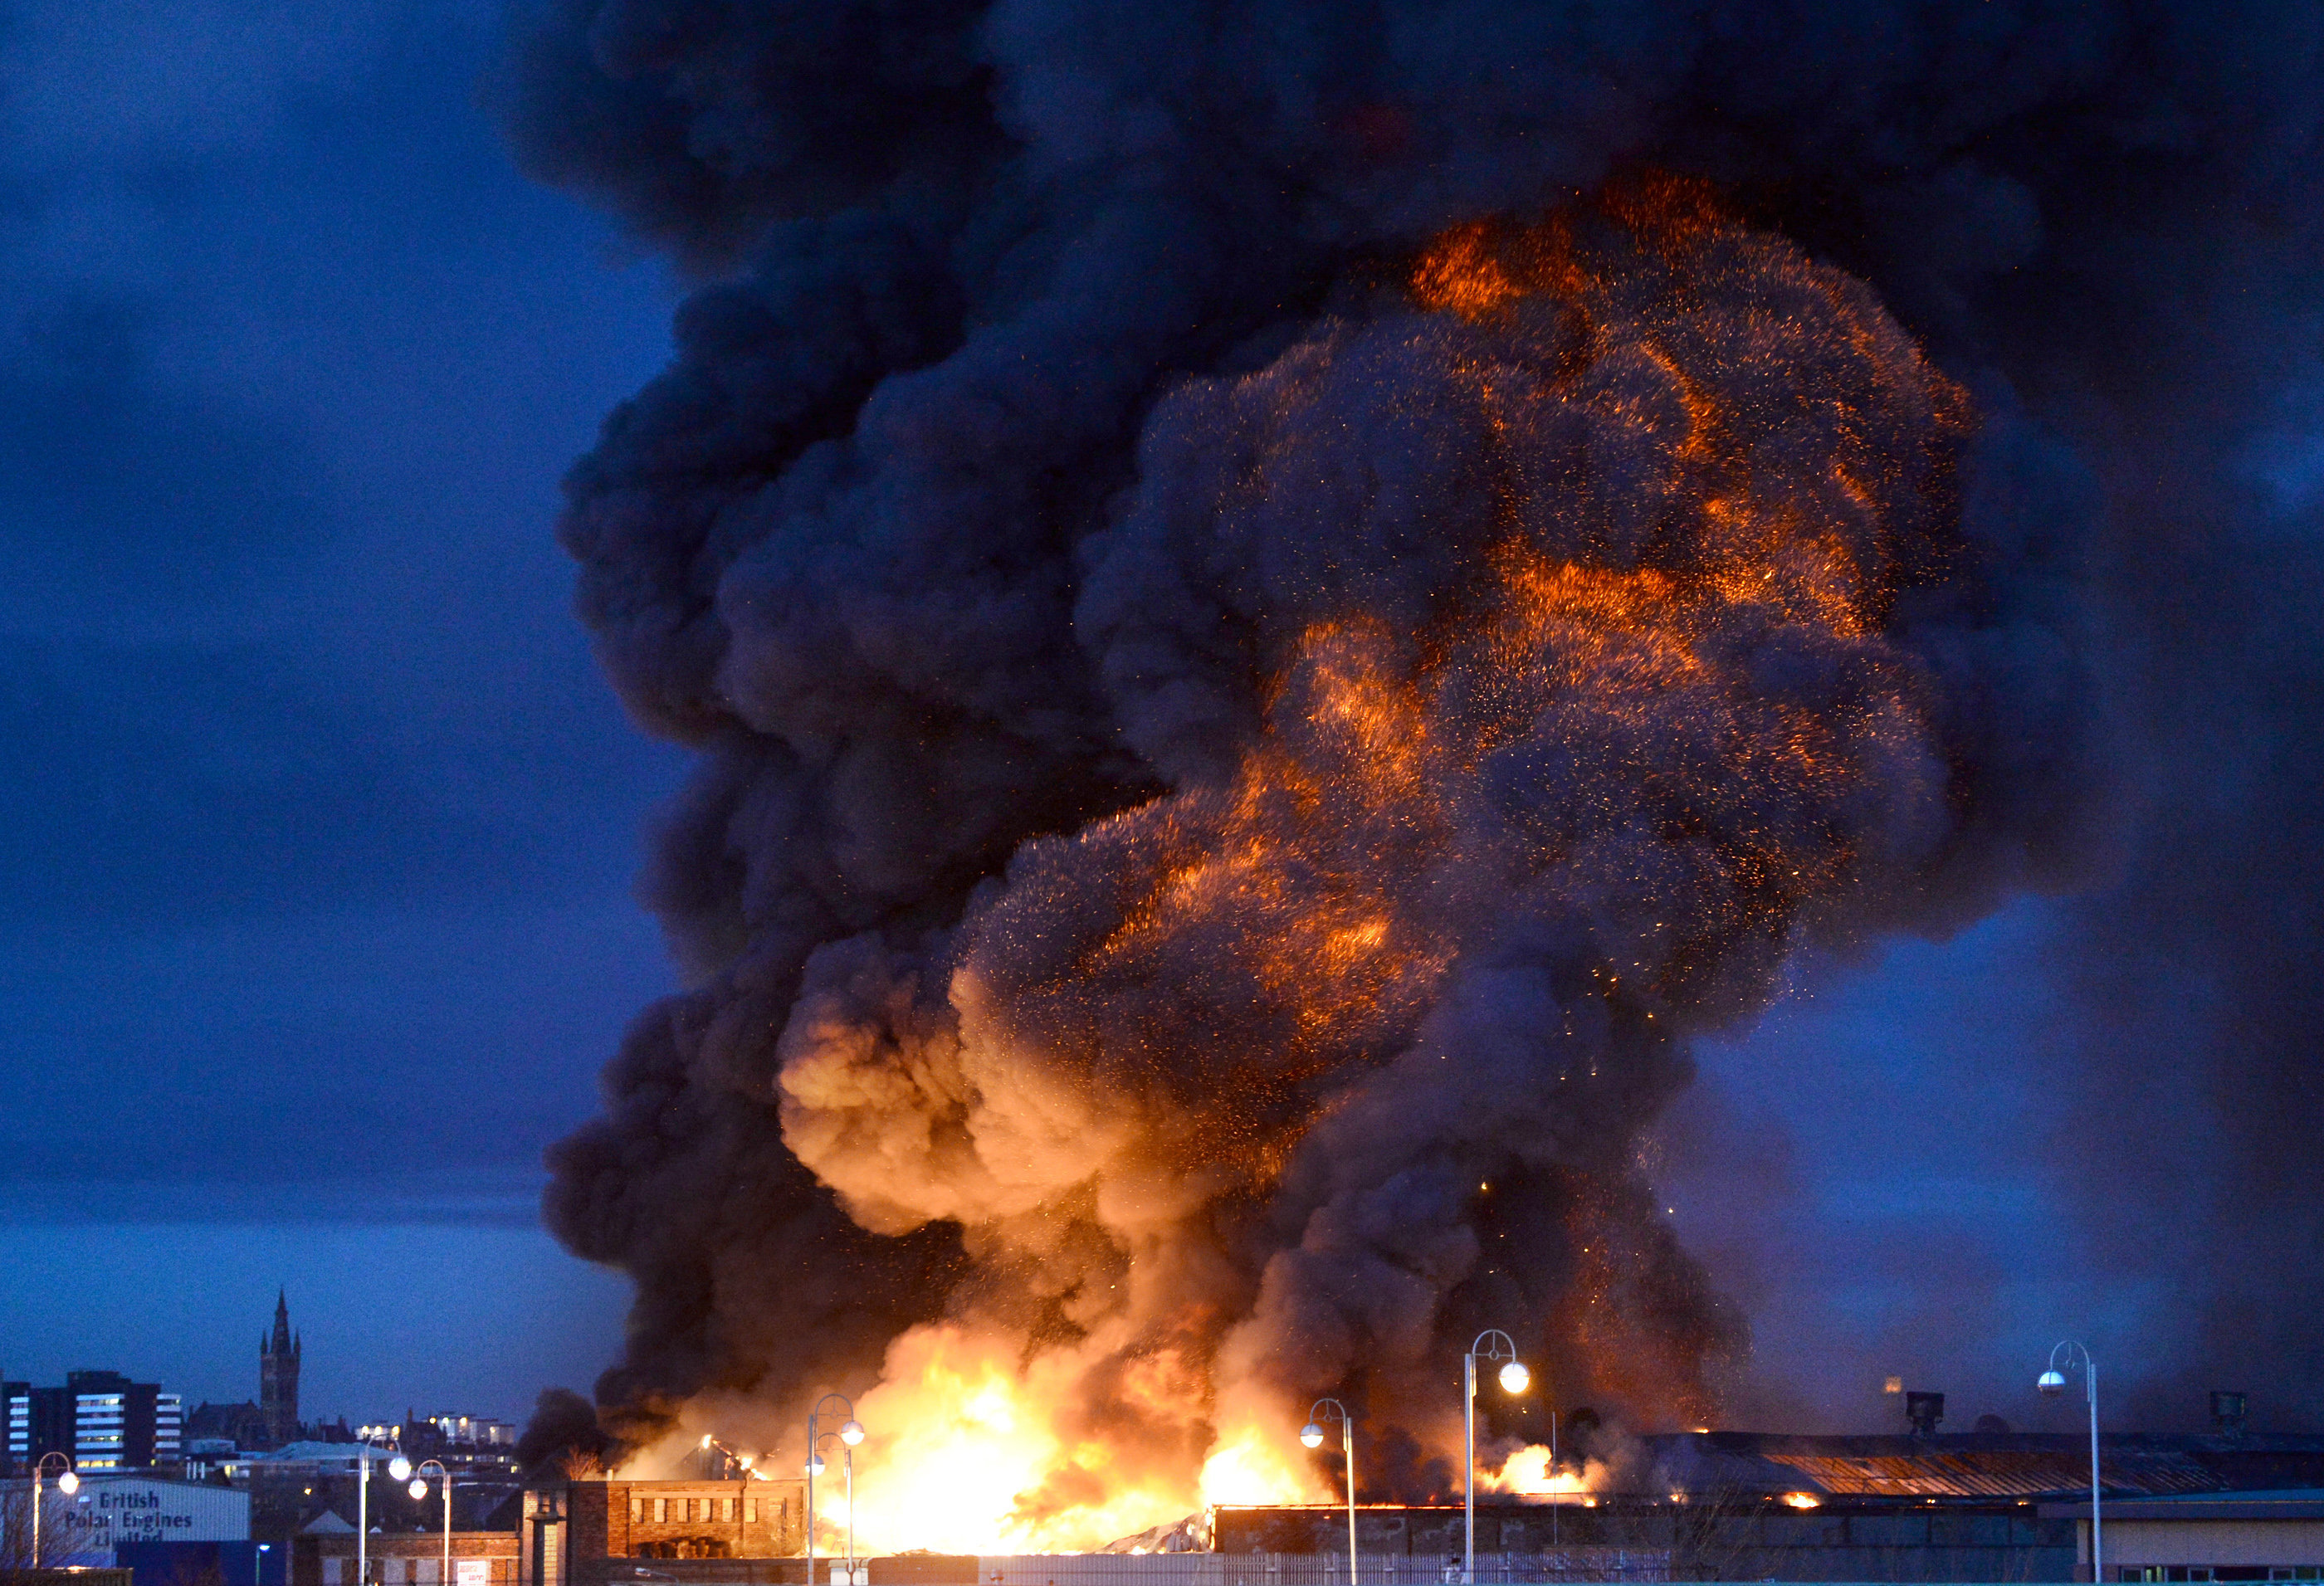 Thousands of people have been left without power as a result of the fire (Picture: SWNS)